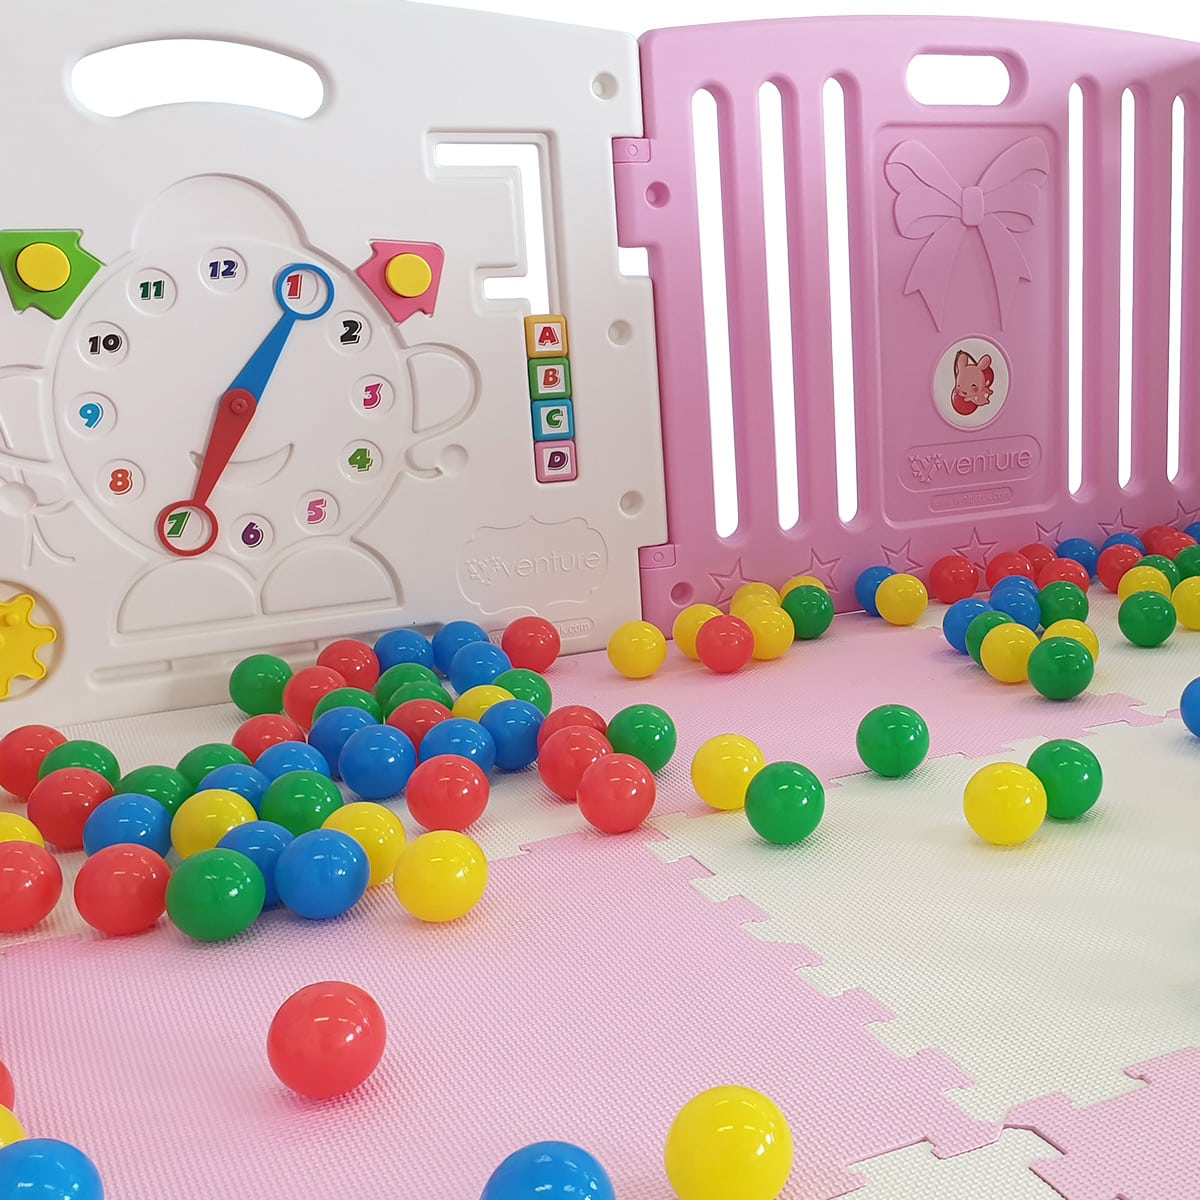 Venture All Stars DUO popping pink playpen